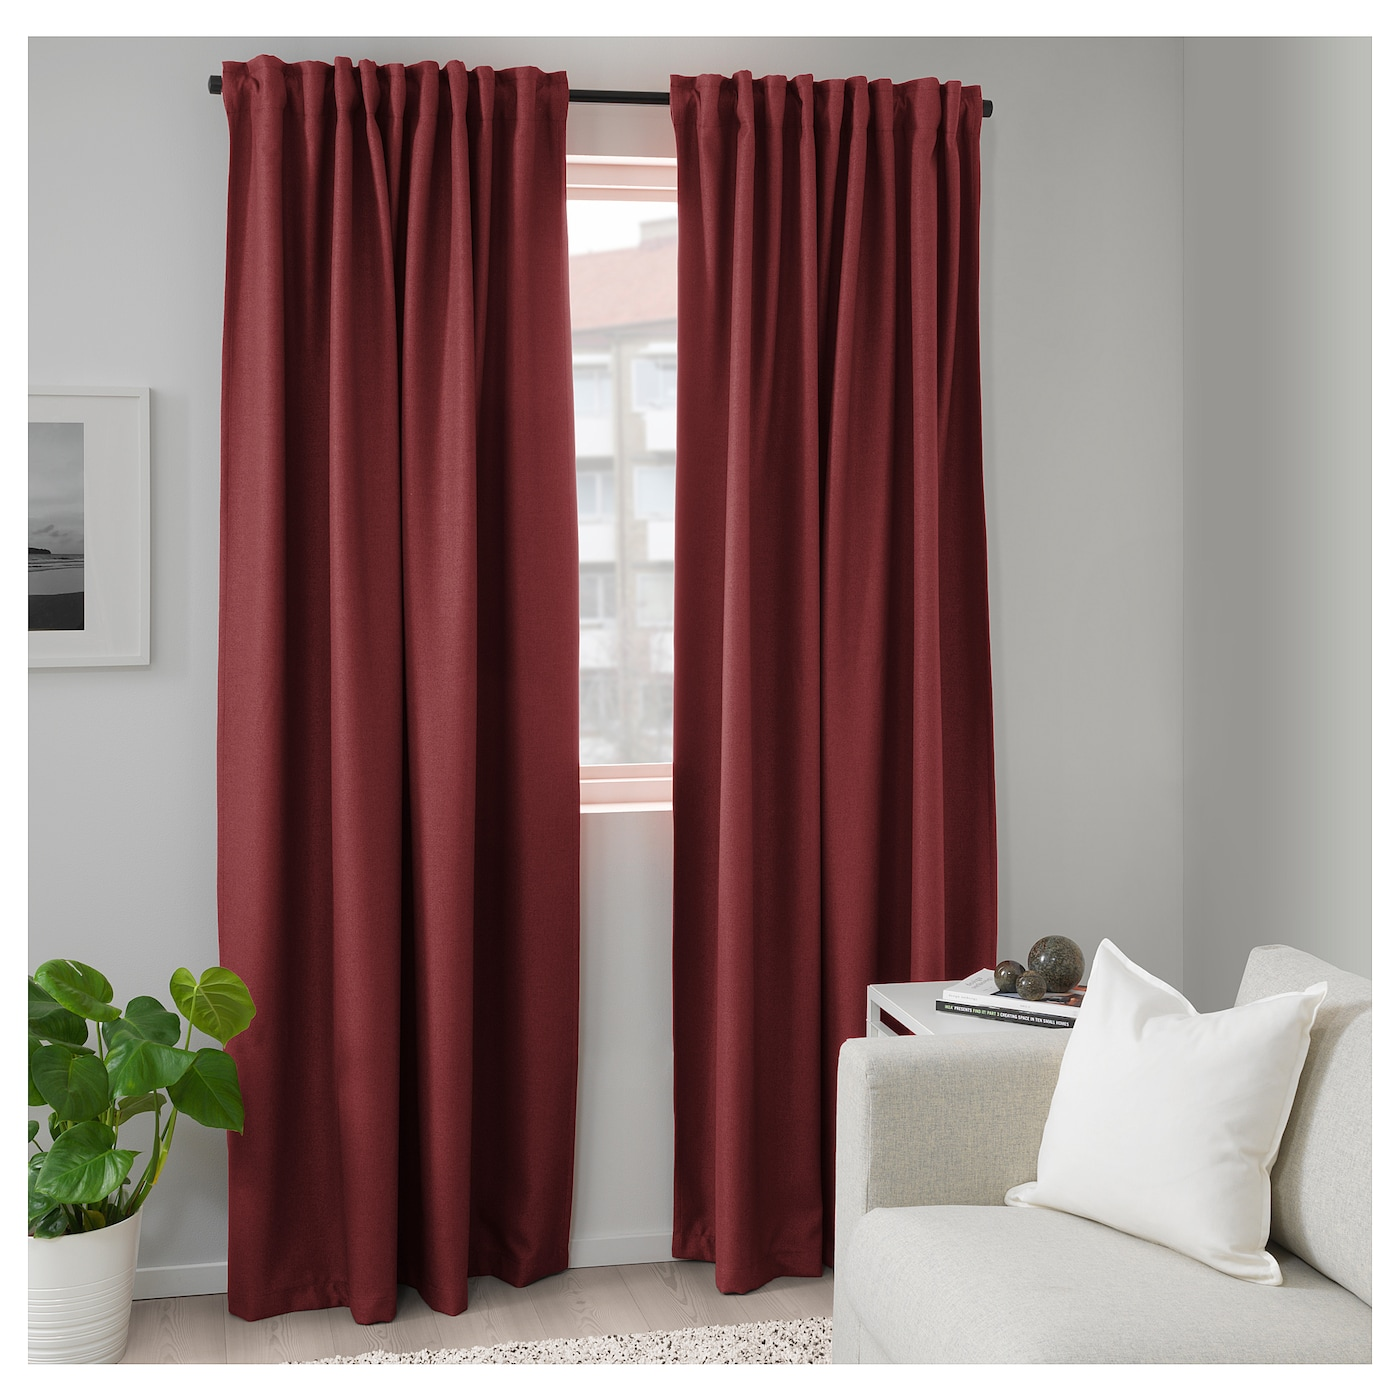 IKEA ANNAKAJSA room darkening curtains, 1 pair